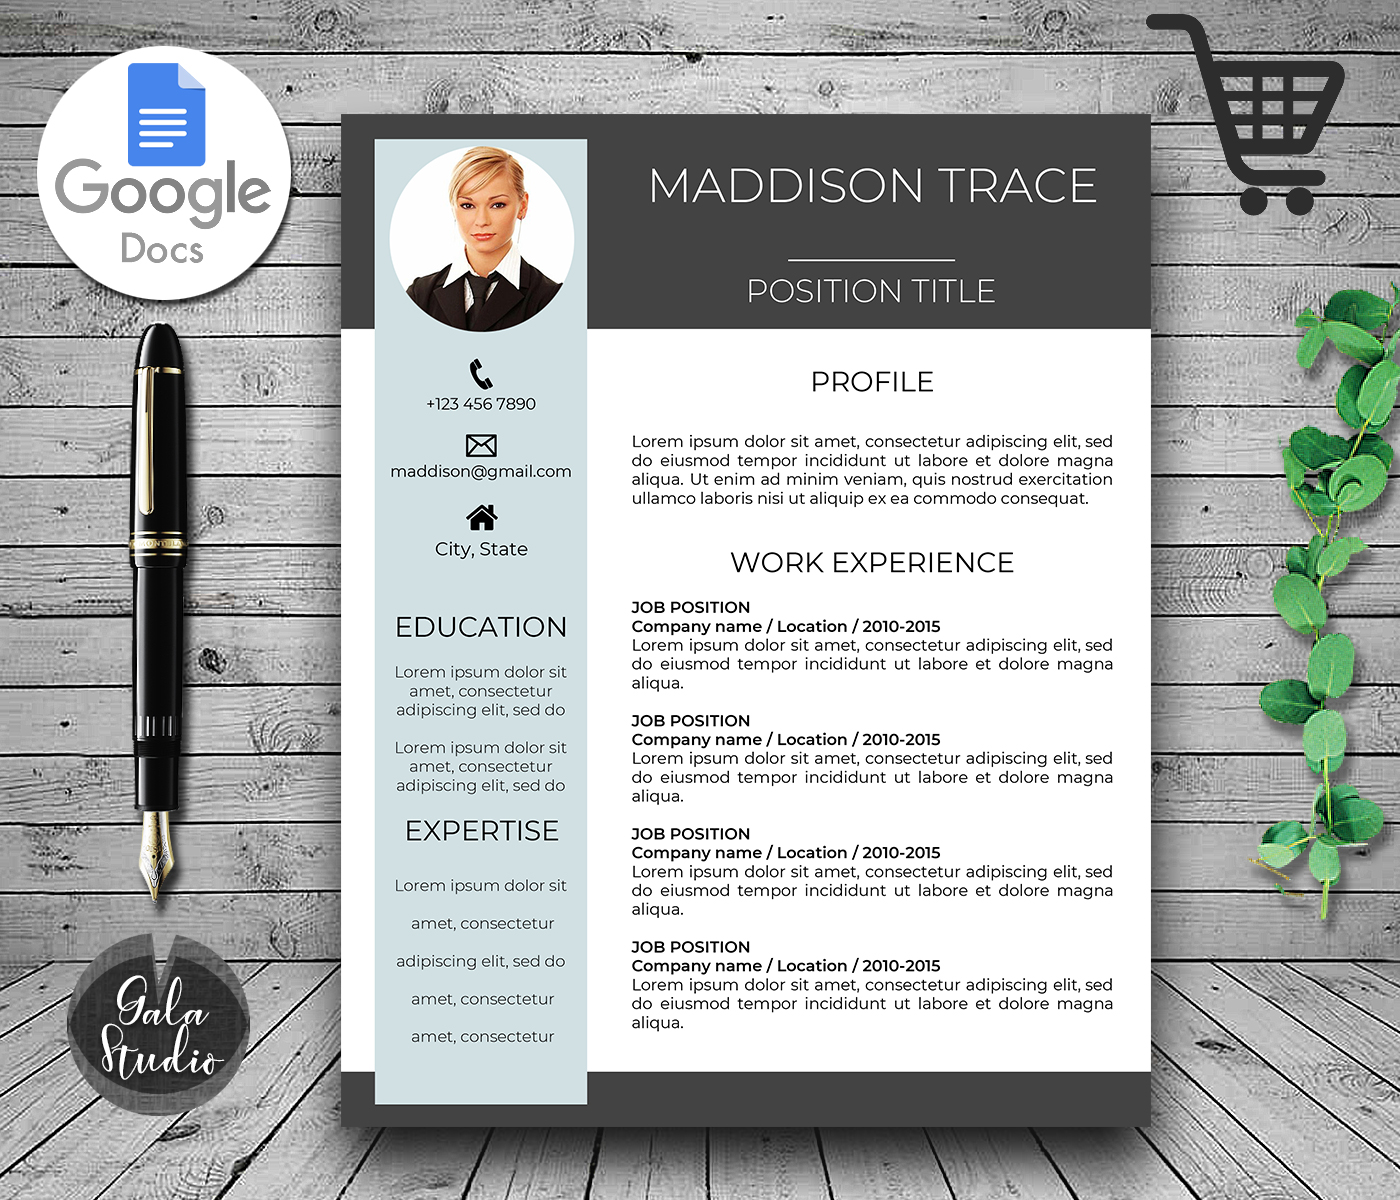 Resume Cover Letter Google Docs from makemedesign.com